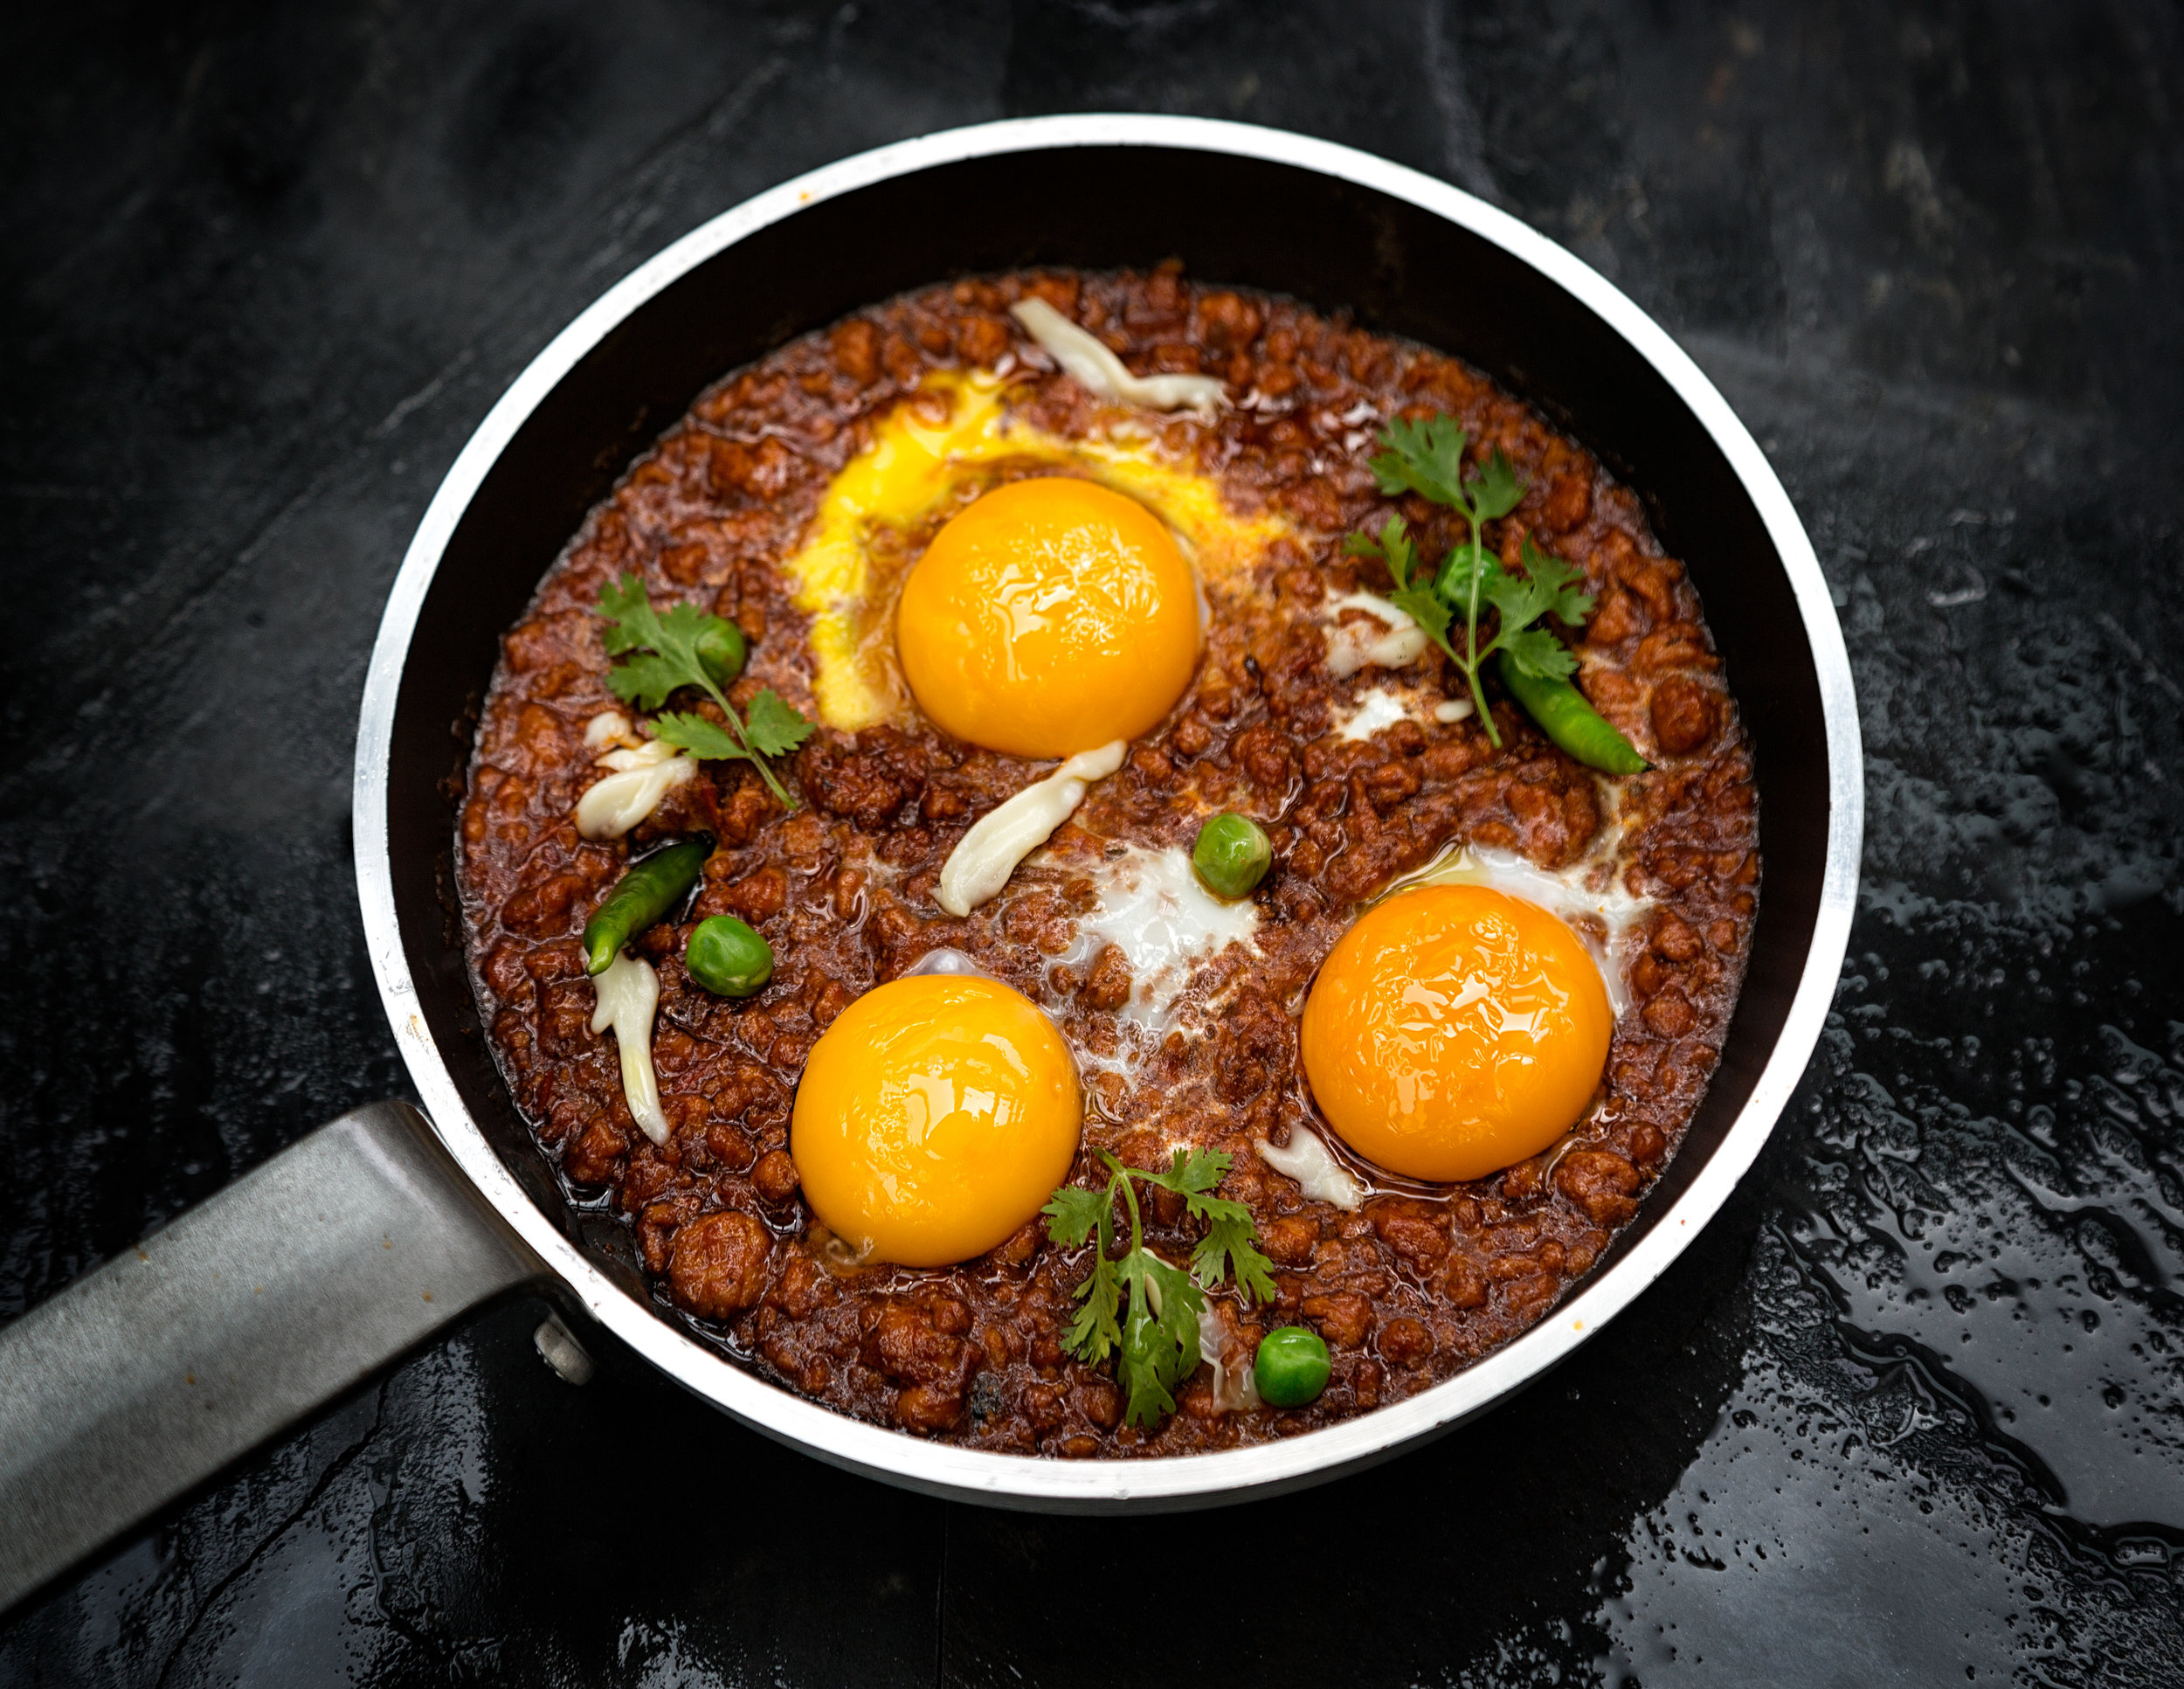 Chicken Chilli, dabba gosht, baked Egg, Chappati, Image by Rohit Chawla for Indian Accent